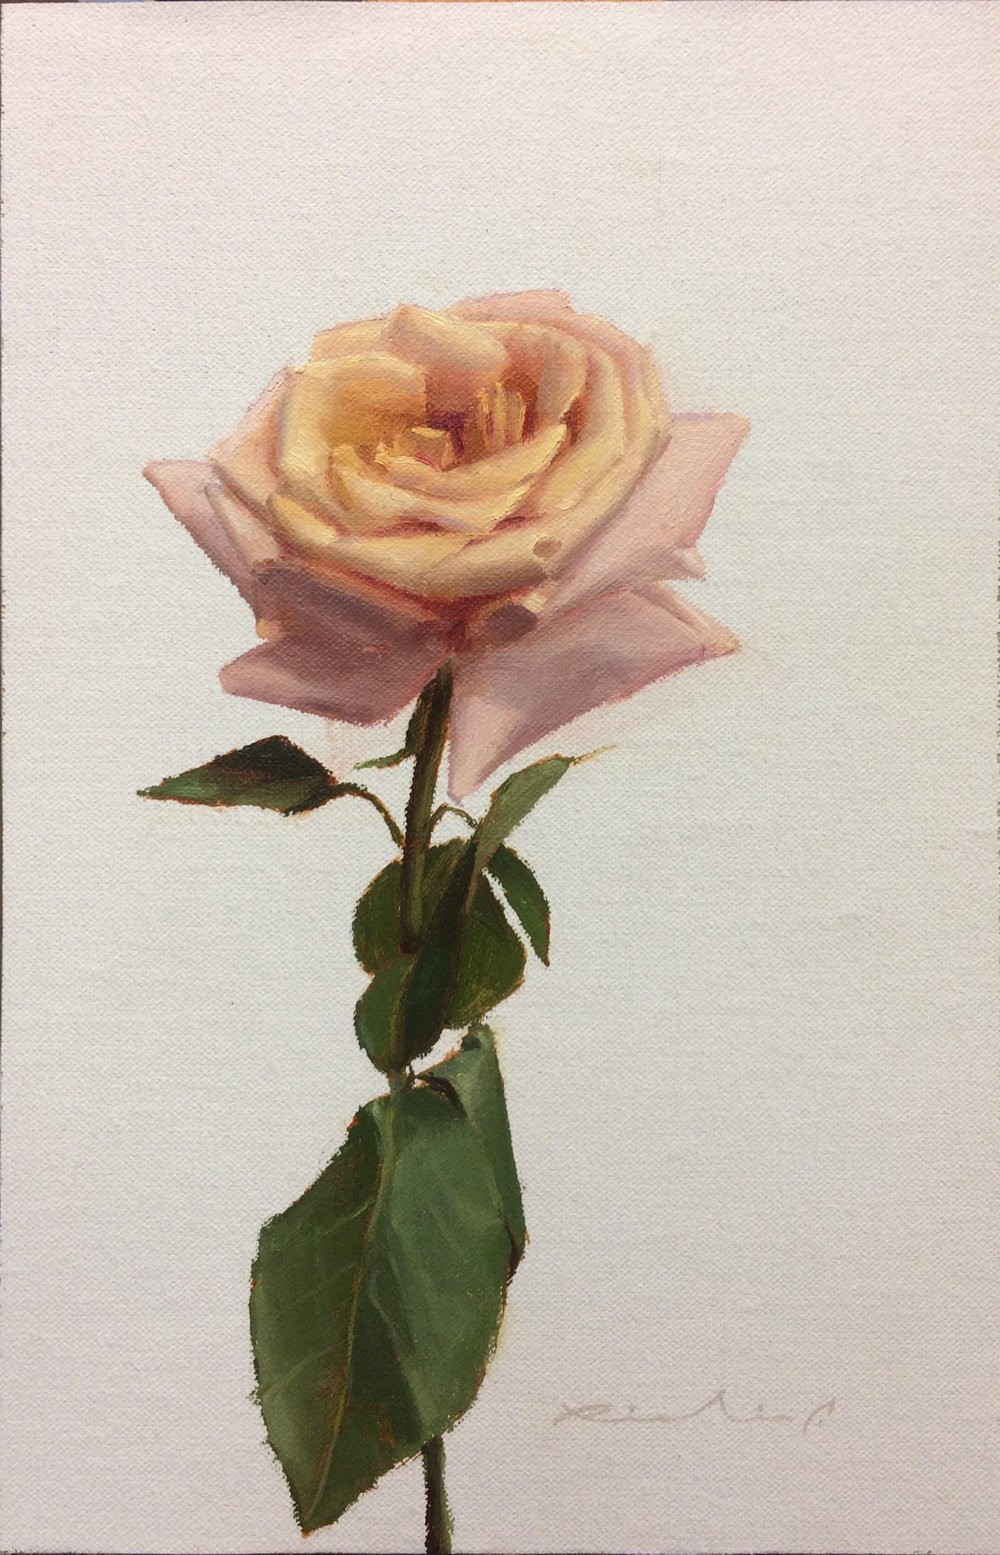 """Bed of Roses 6""  $650.00  8 x 12 inches 